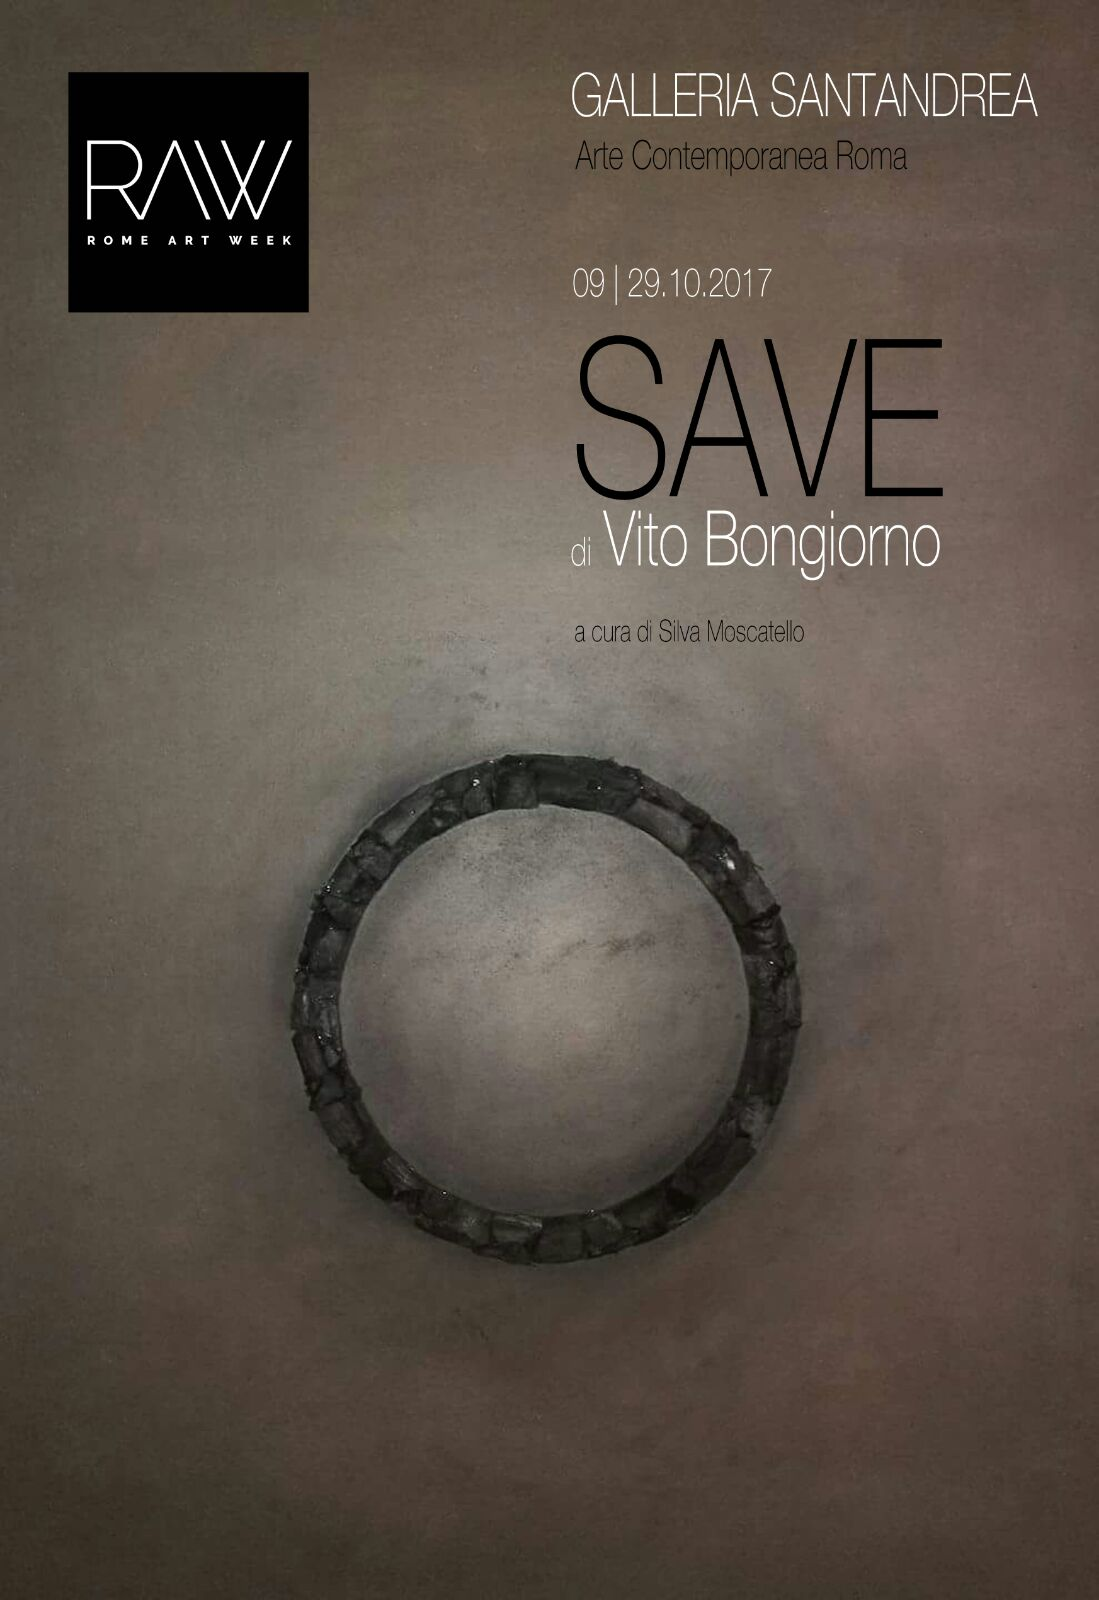 Save Vito Bongiorno Galleria Santandrea Arte Contemporanea